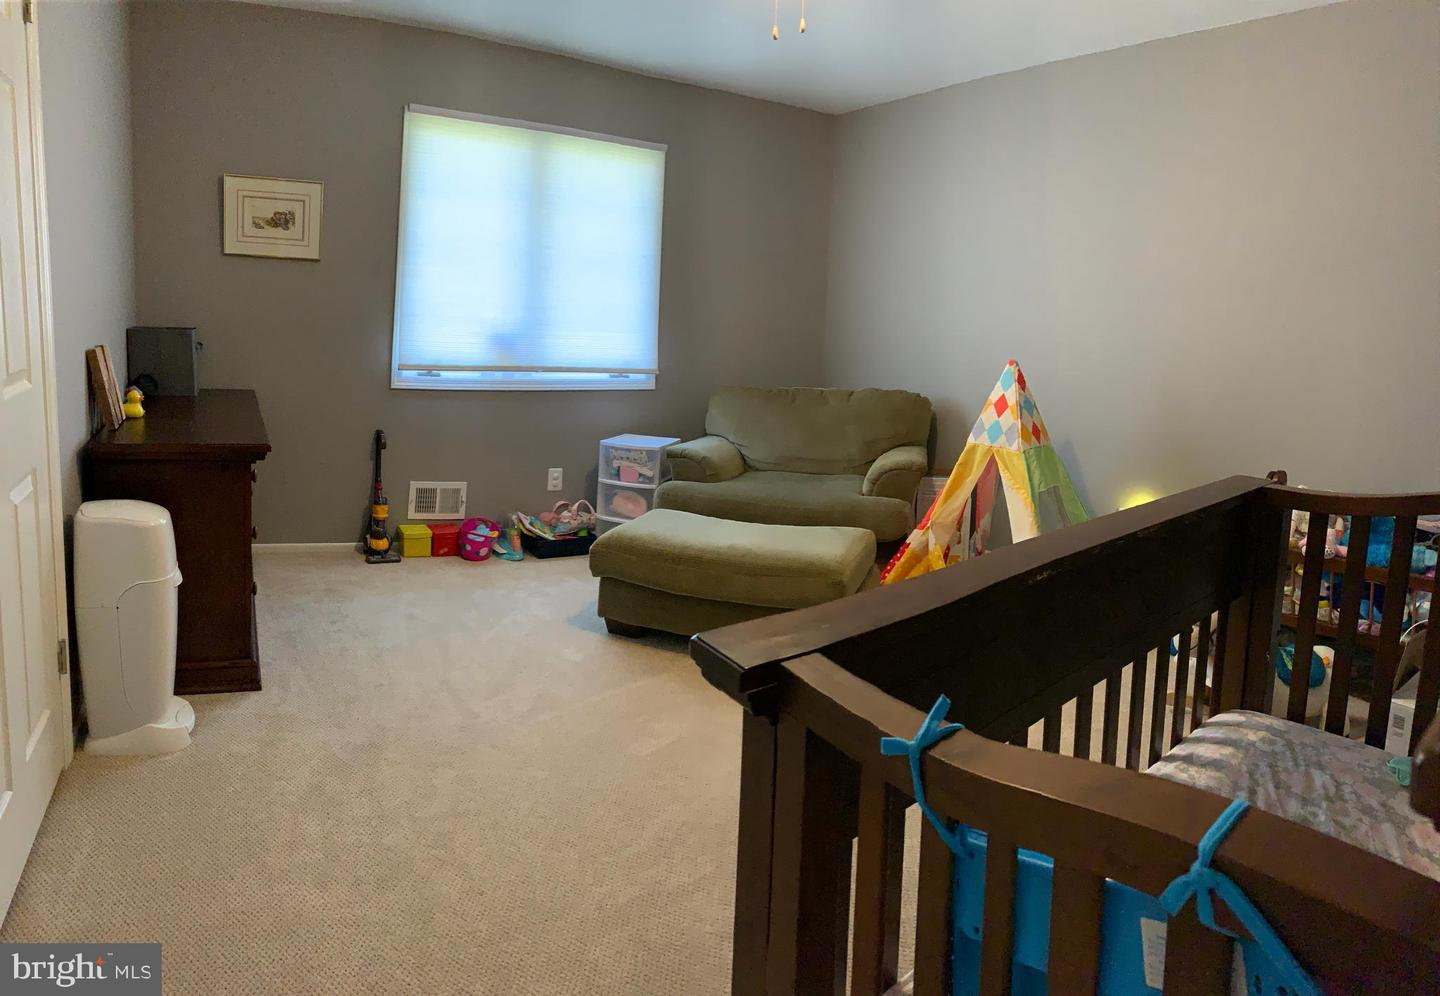 Additional photo for property listing at 18 RAY DWIER Drive Hamilton, New Jersey 08690 United States